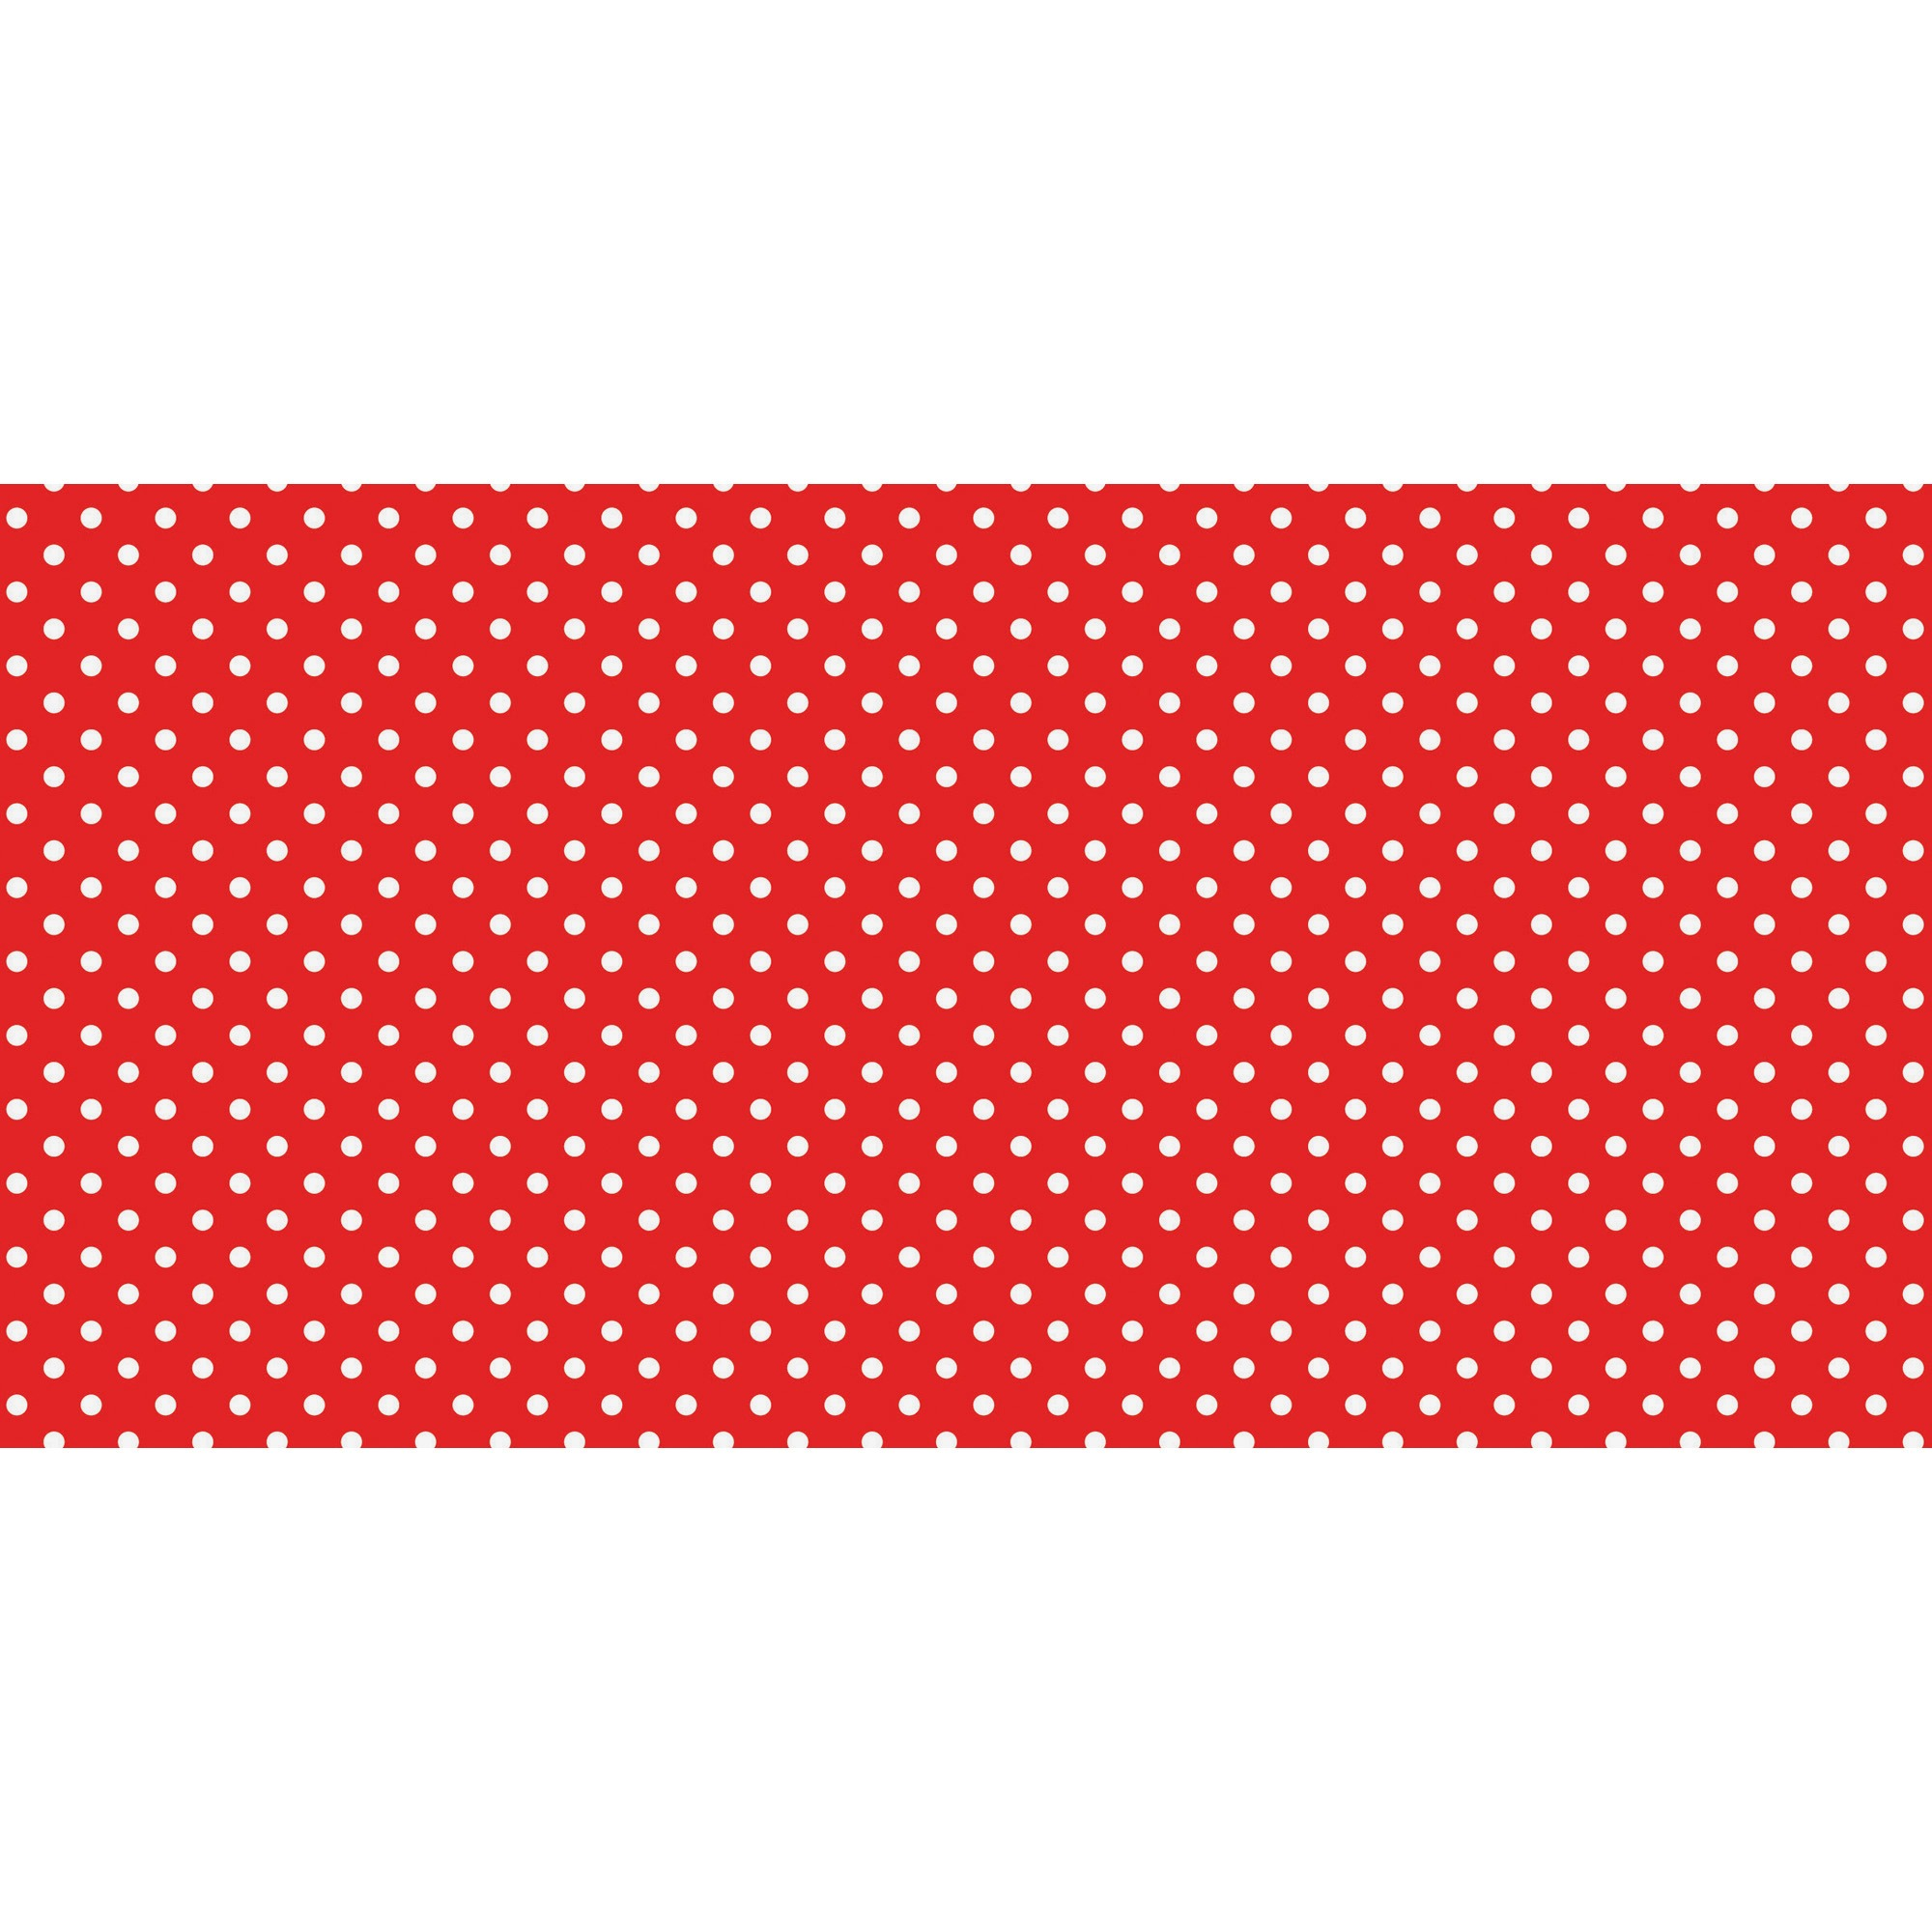 Fadeless Bulletin Board Art Paper, Red, 1 Roll (Quantity)